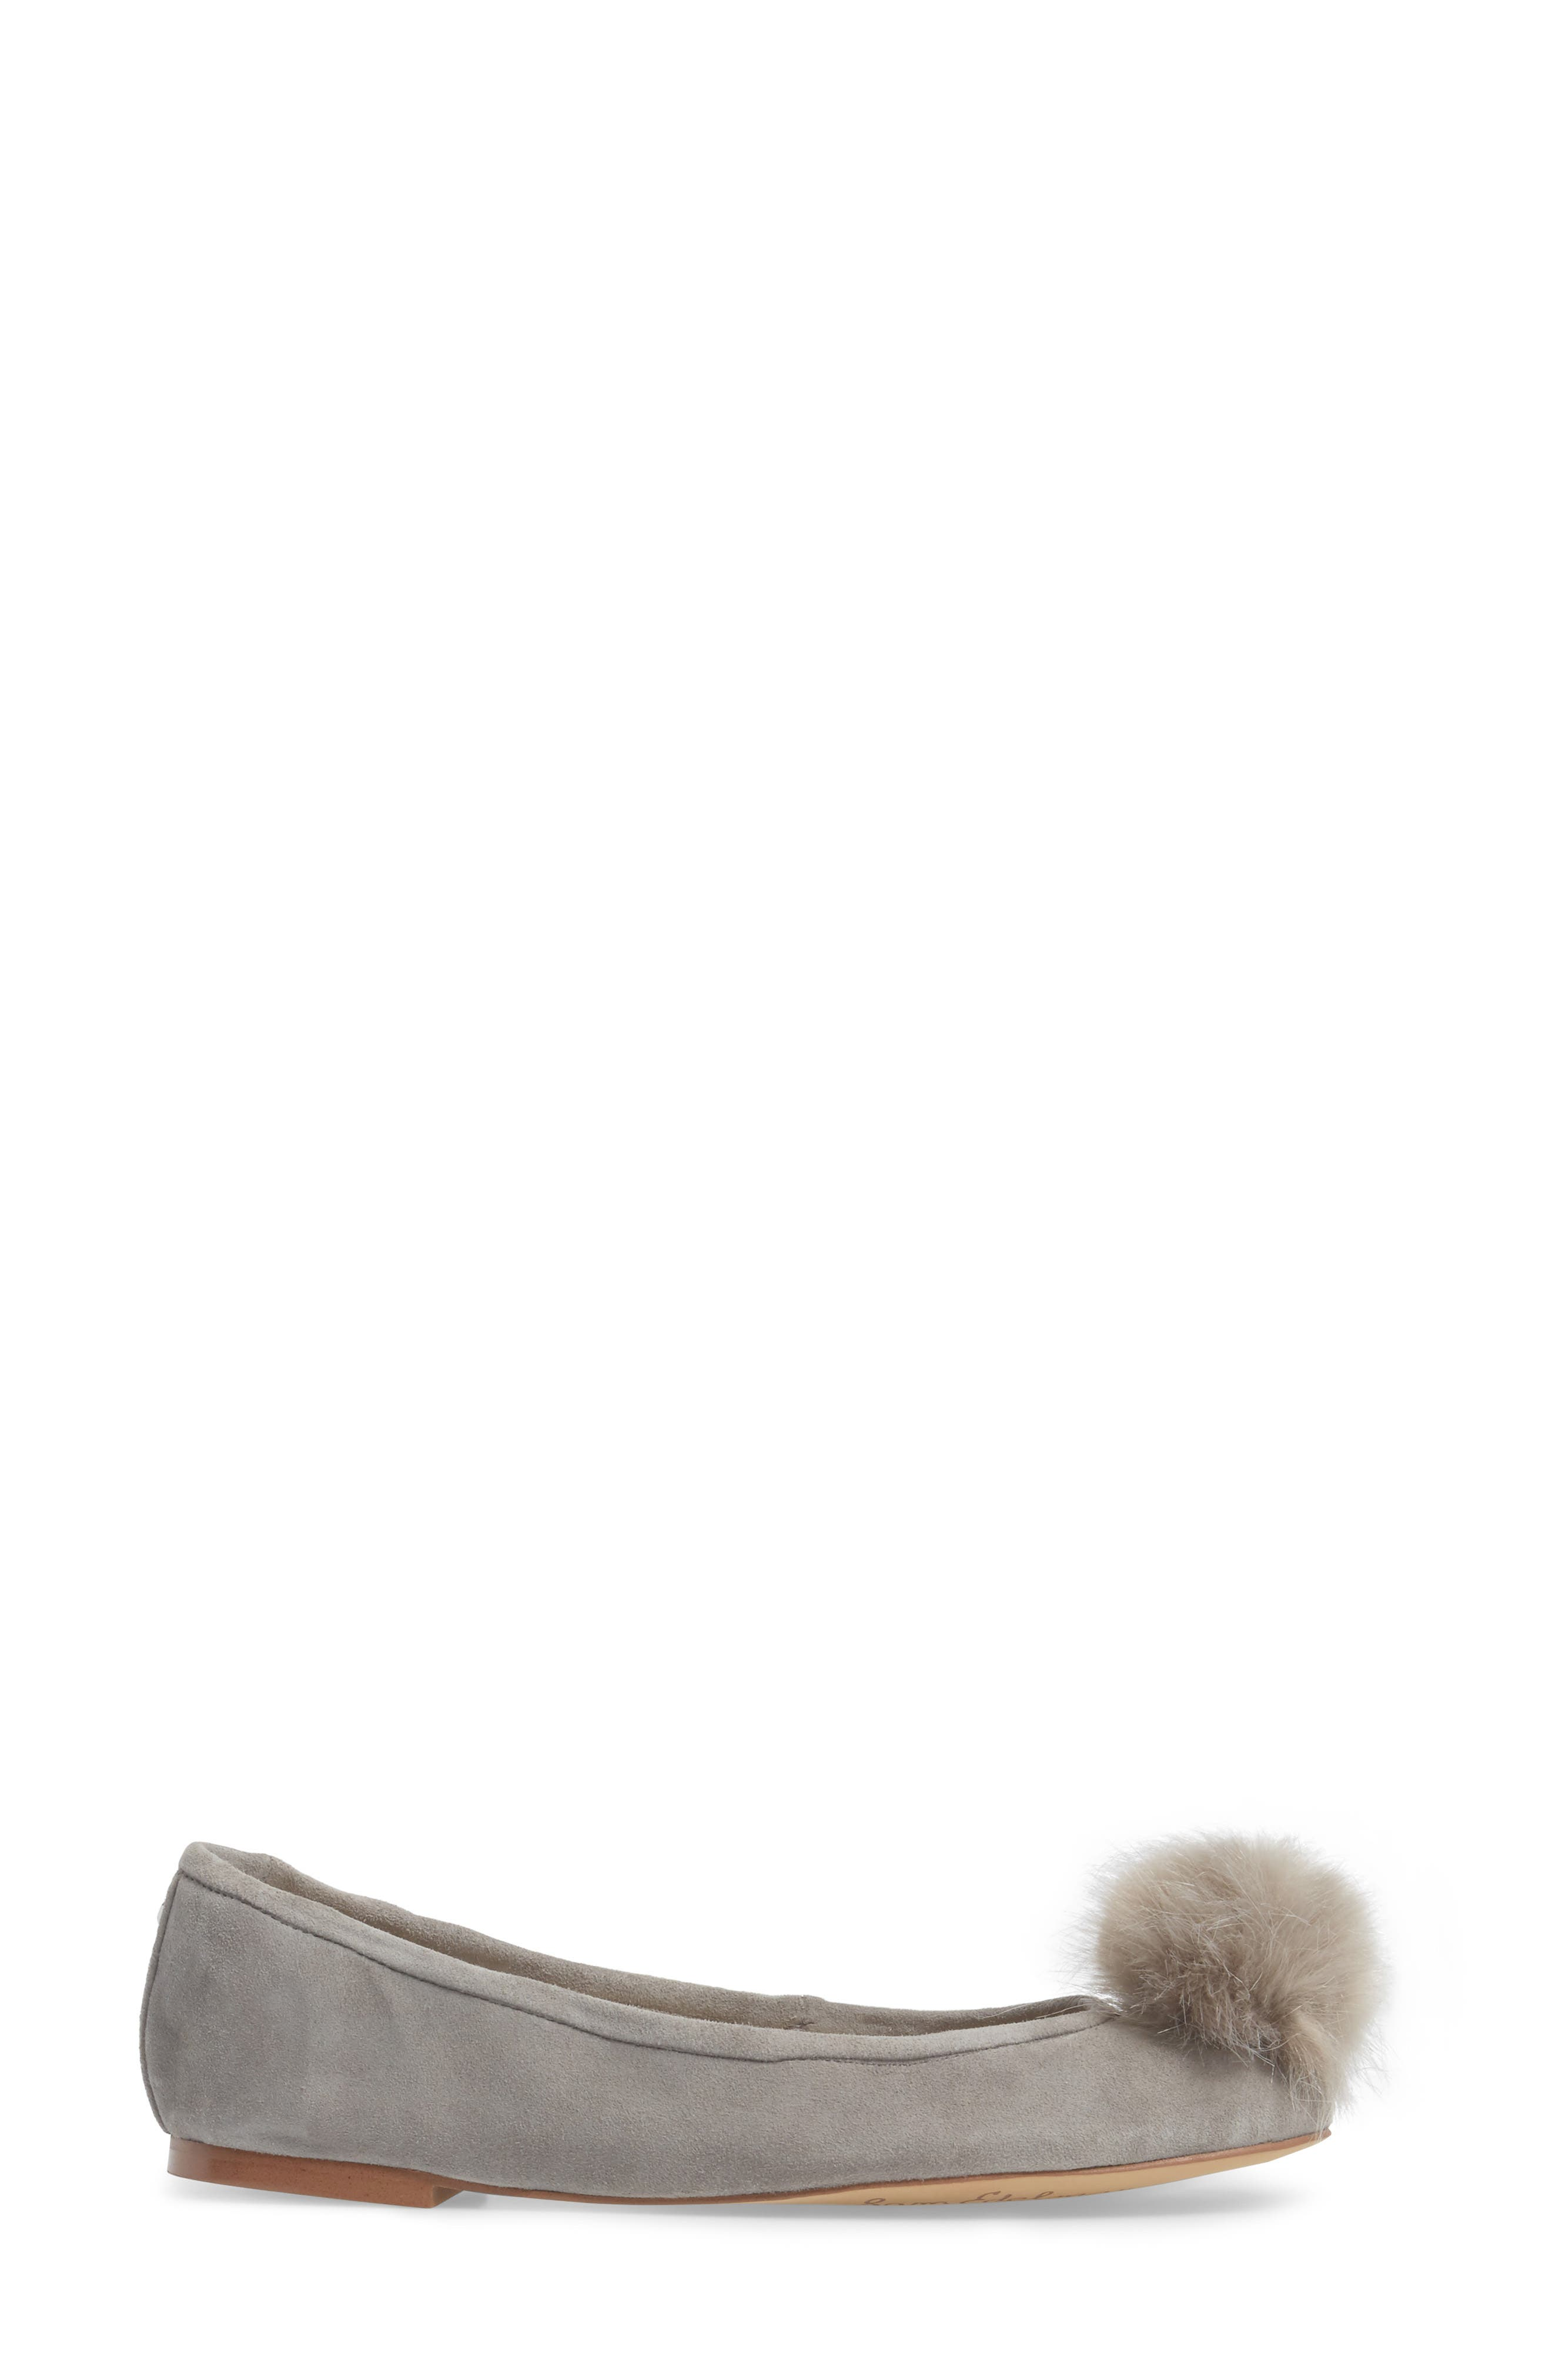 Farina Flat with Faux Fur Pompom,                             Alternate thumbnail 3, color,                             020